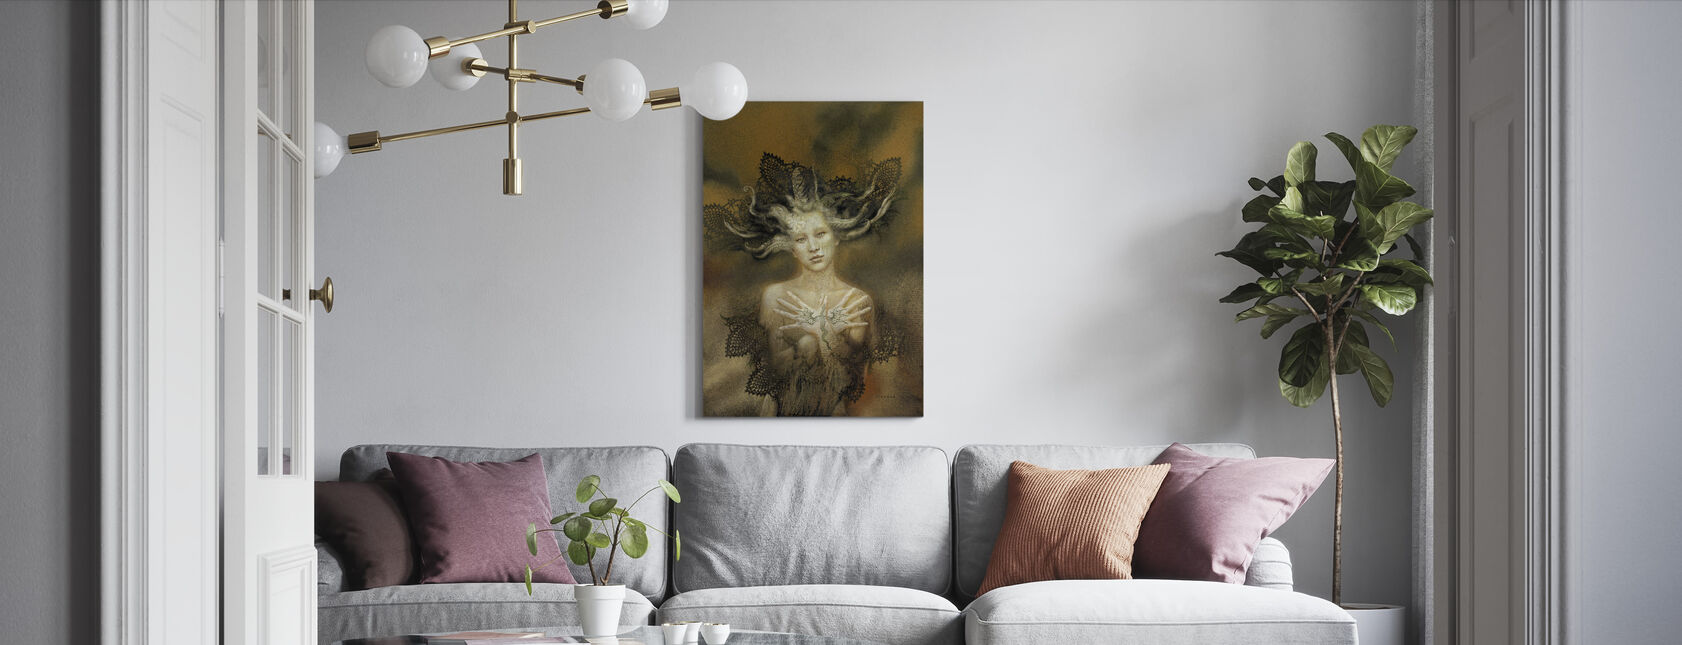 Urlindea - Canvas print - Living Room